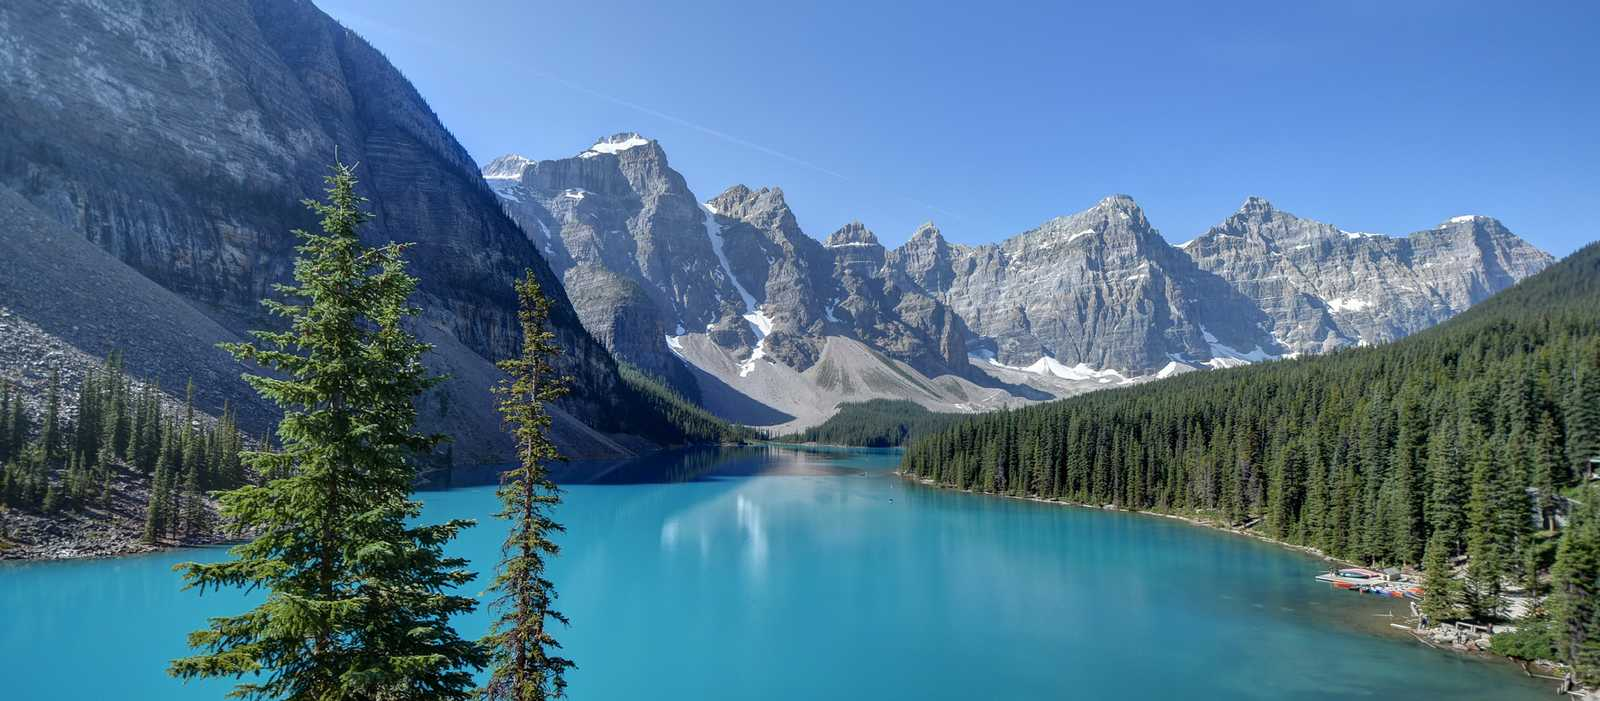 Der Moraine Lake im Banff Nationalpark in Alberta, Kanada